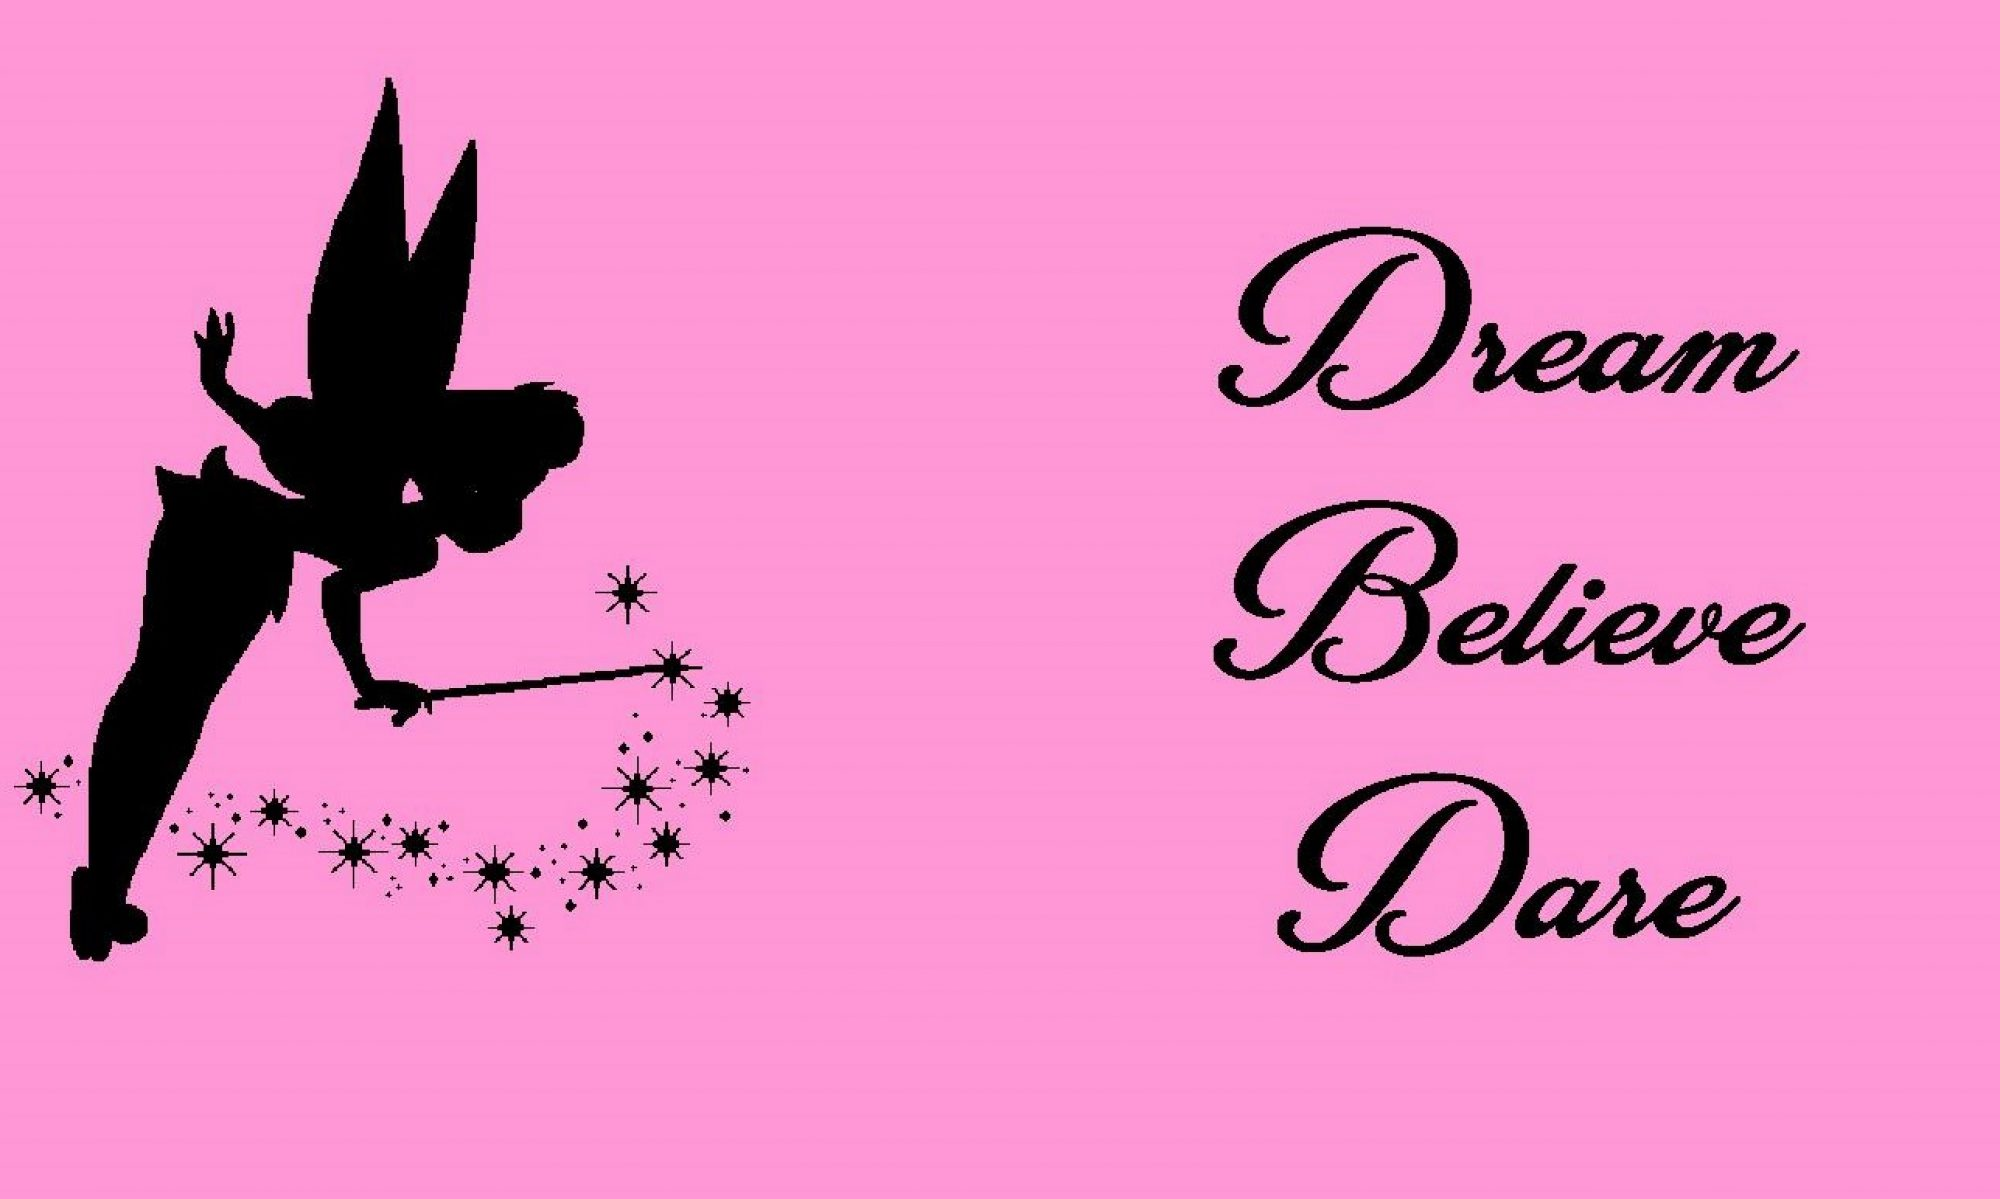 Dream Believe Dare